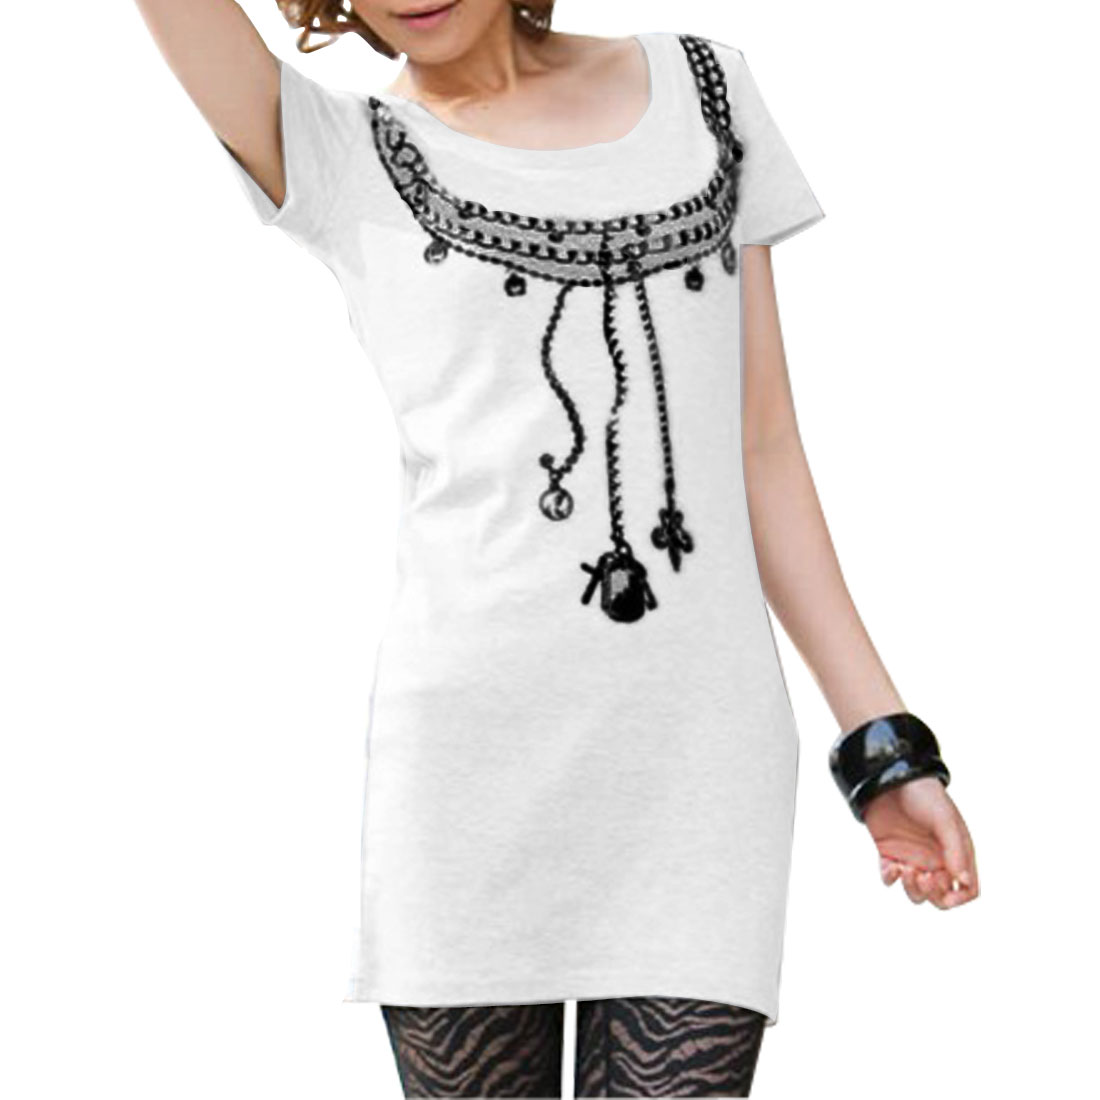 Ladies Pullover Short Sleeves Necklace Printed Casual Tunic T-shirt White XS